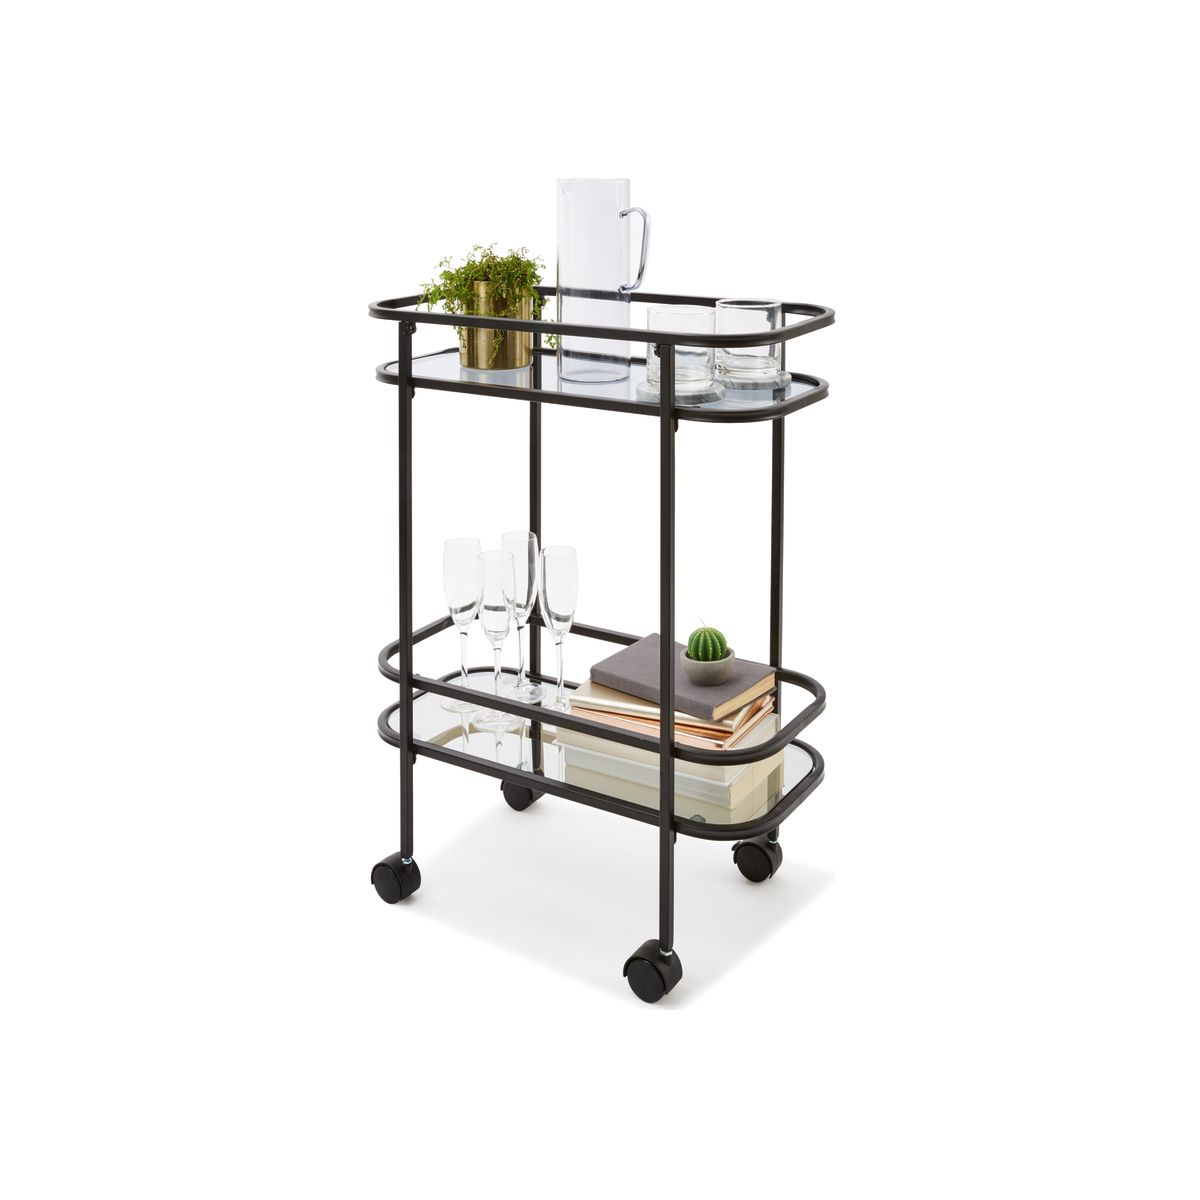 Drinks Trolley   Kmart (With images)   Drinks trolley ...